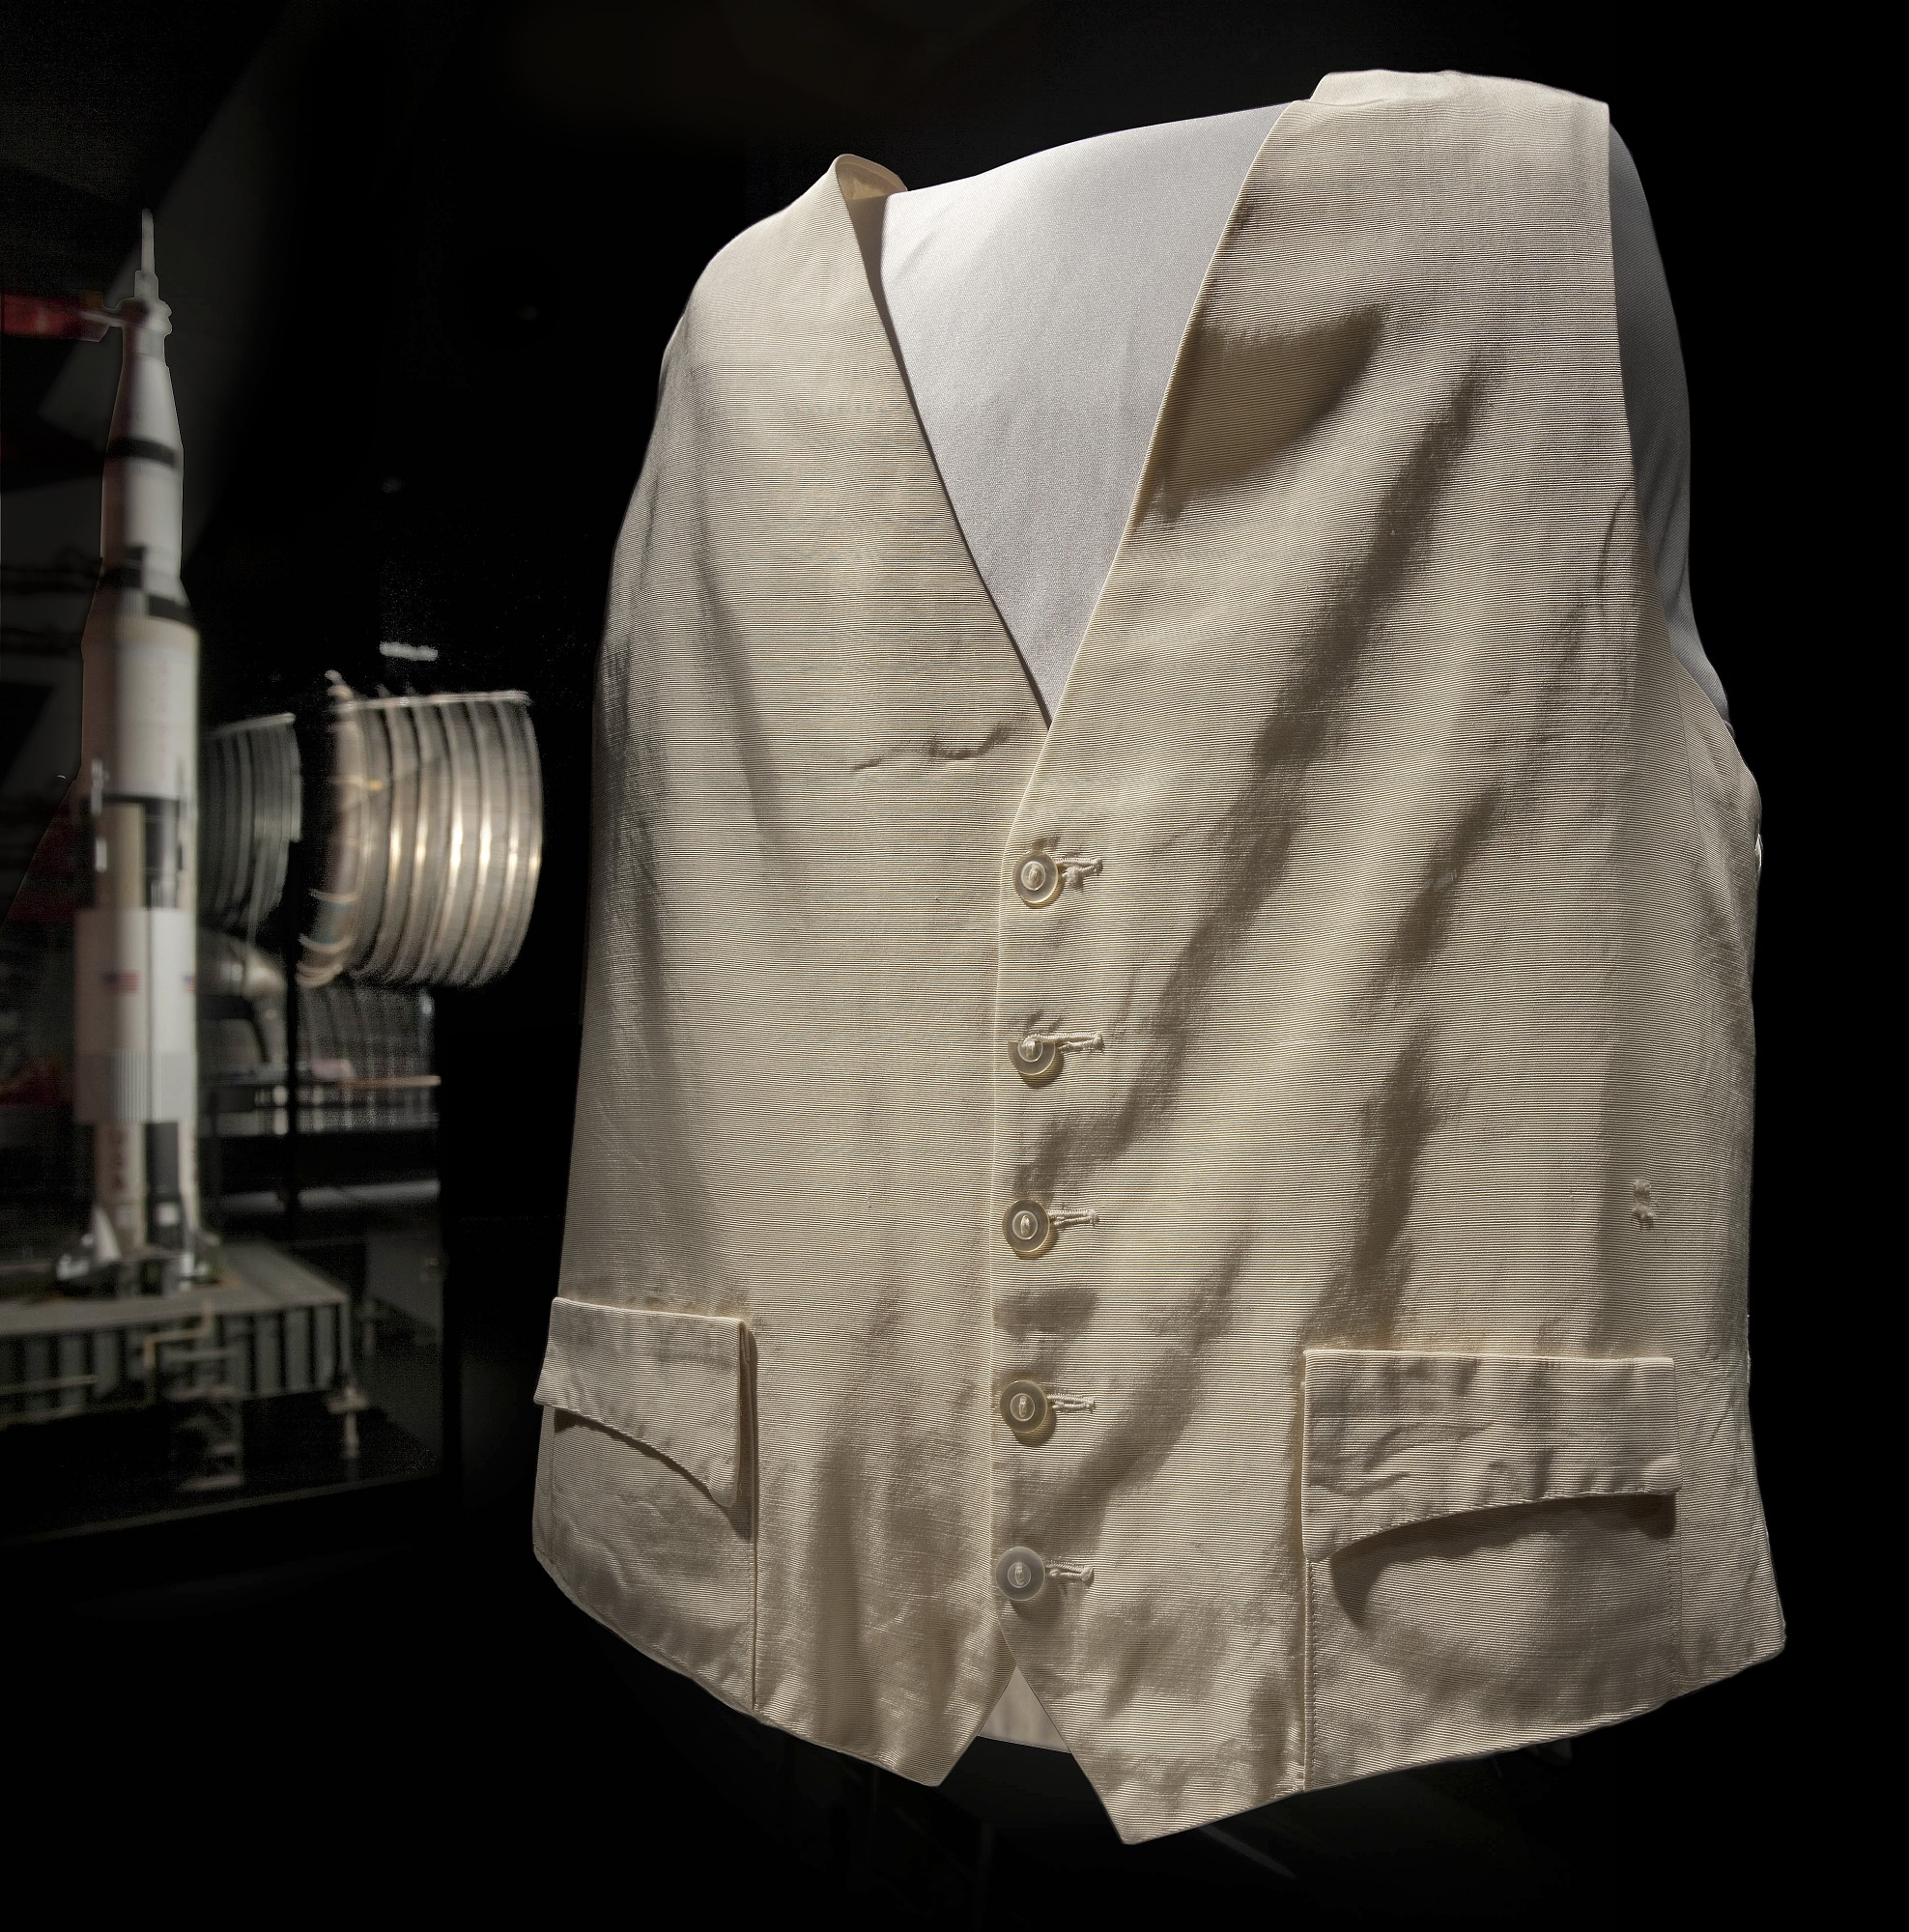 Image of : Vest, Apollo 13, Gene Kranz